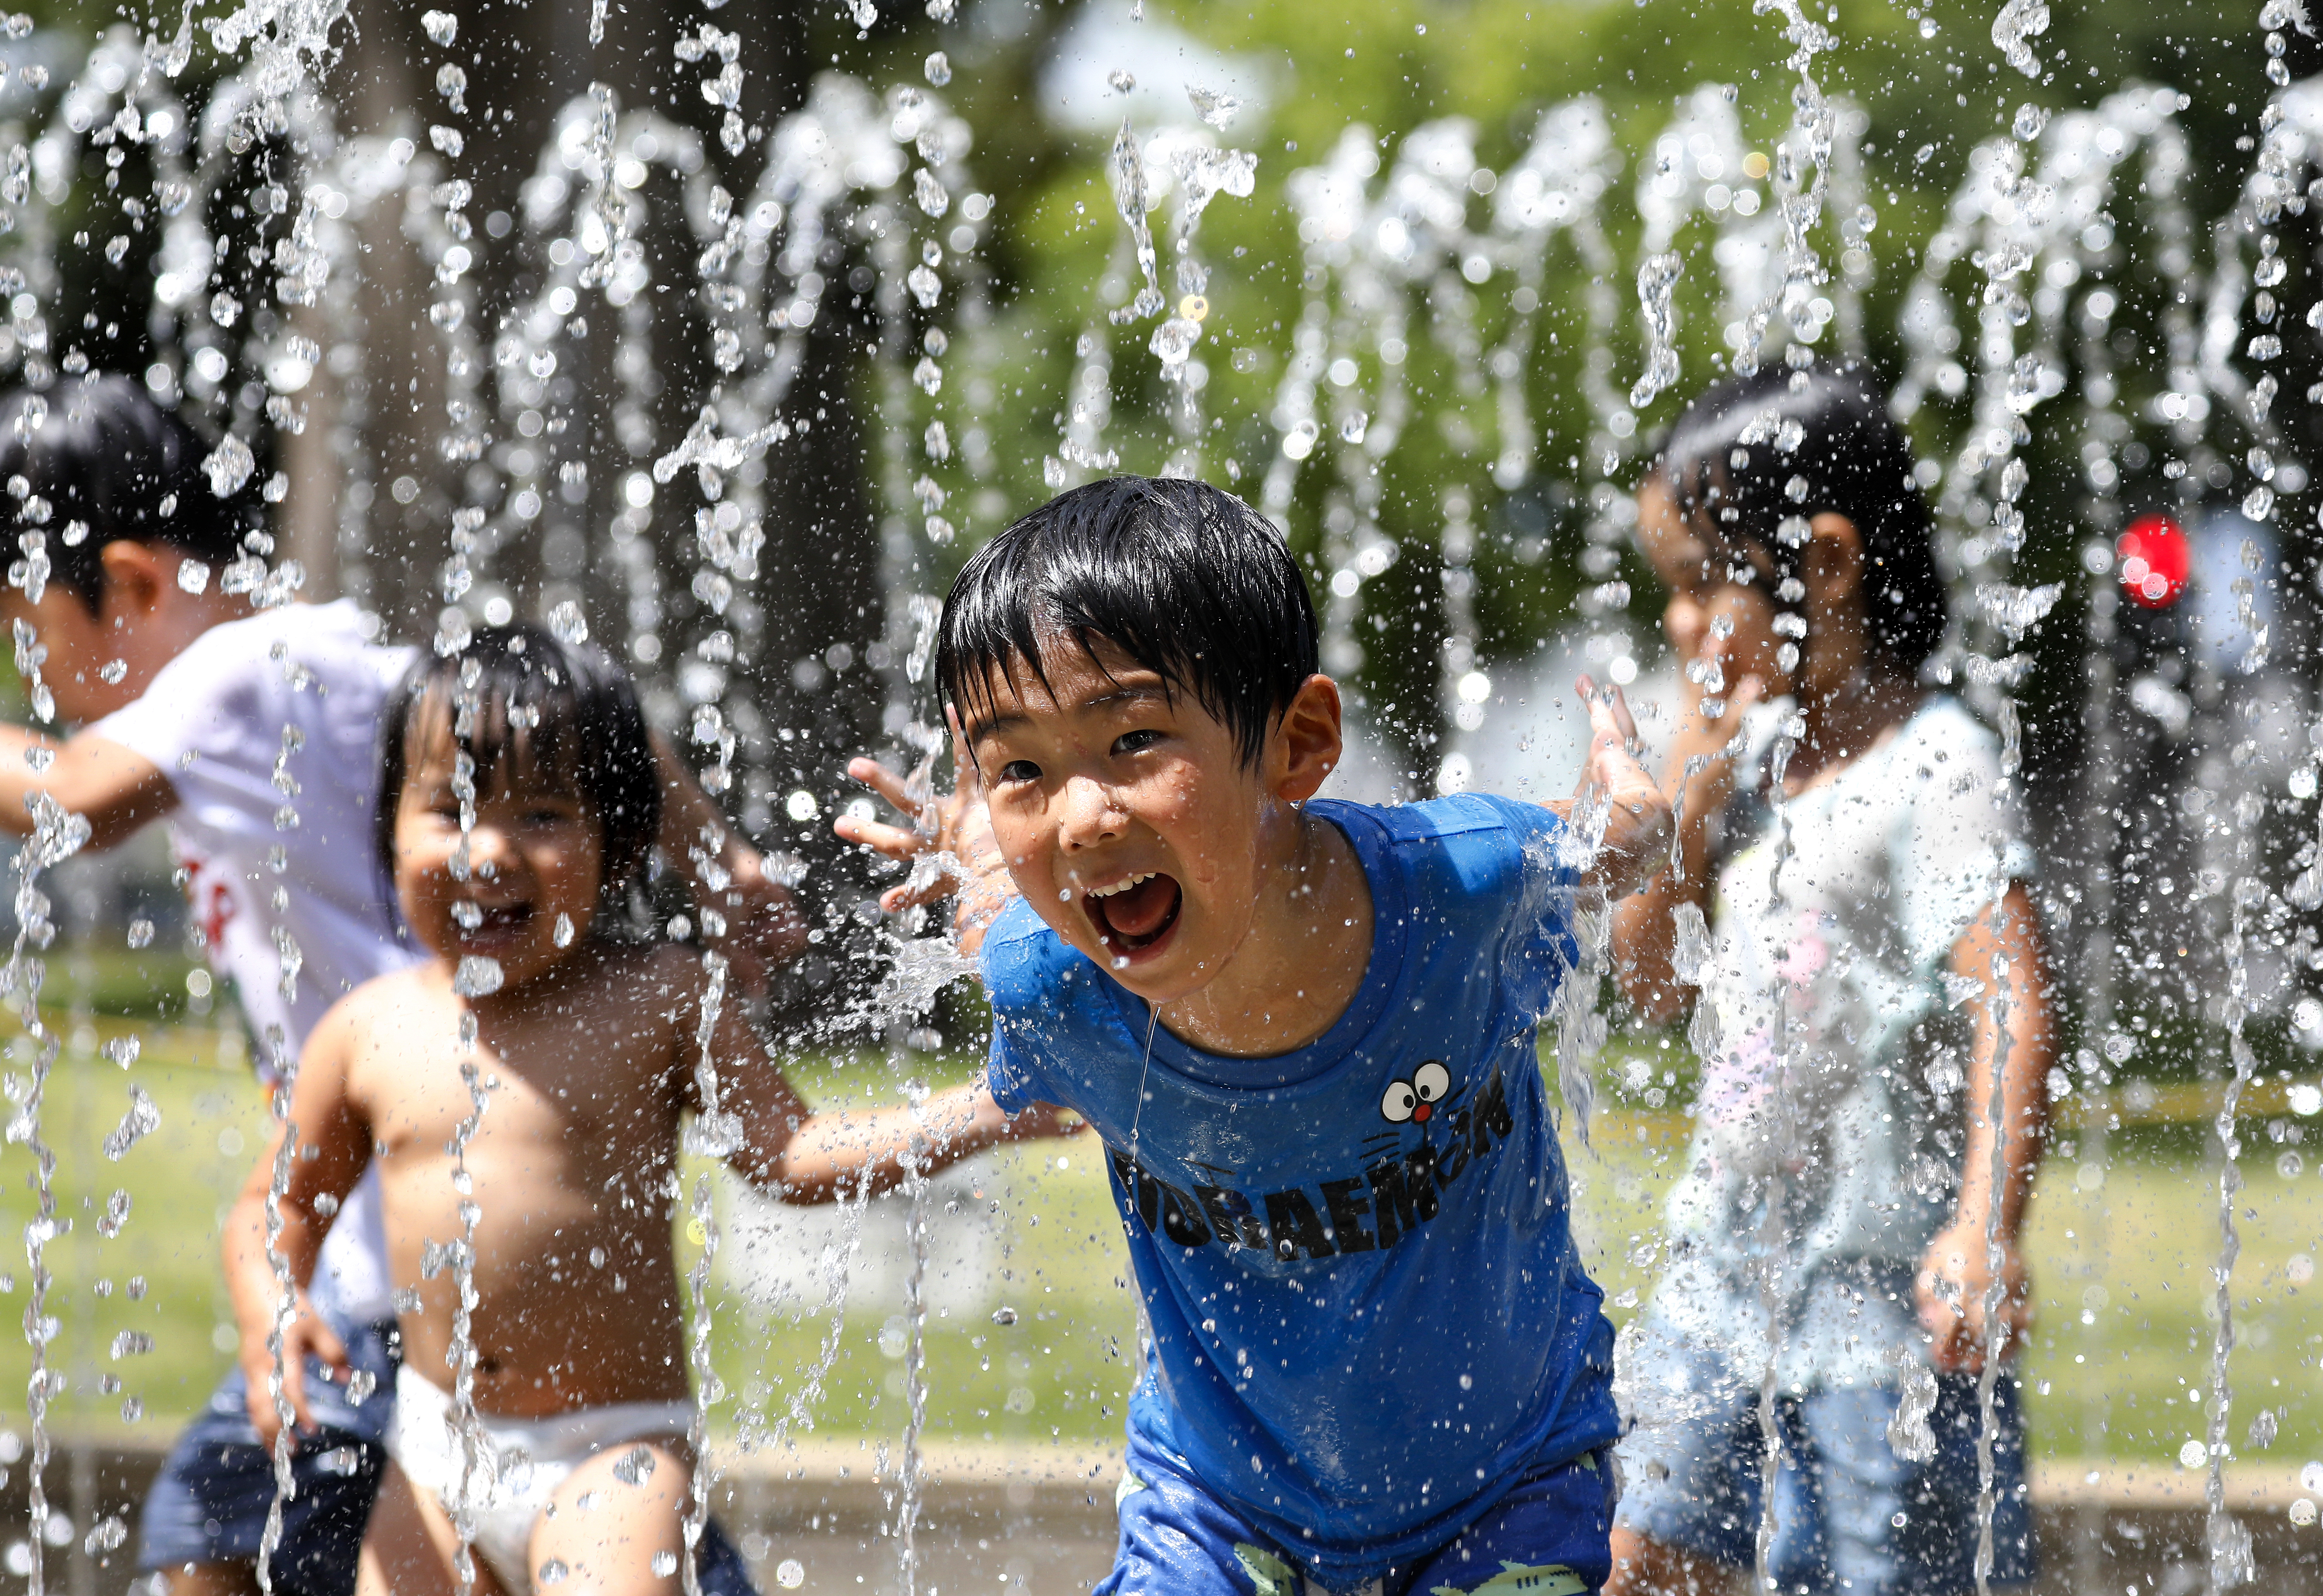 Children play in the water jets at a park near Nerima in Tokyo as temperature rose up to 39.6 degrees Celsius, the highest temperature since the start of weather information record. While central Tokyo hit the 39 degrees mark, the city of Kumagaya, north of Tokyo measured 41.1 degrees Celsius , the yet highest temperature in Japan. From the end of April to mid-July 2018, reportedly so far 21,166 people were taken to hospital for heat related problems, alone from 09 to 15 July, a total of 9,956 people were hospitalized due to suffering from the hot weather conditions, Japan's Fire and Disaster Management Agency said.